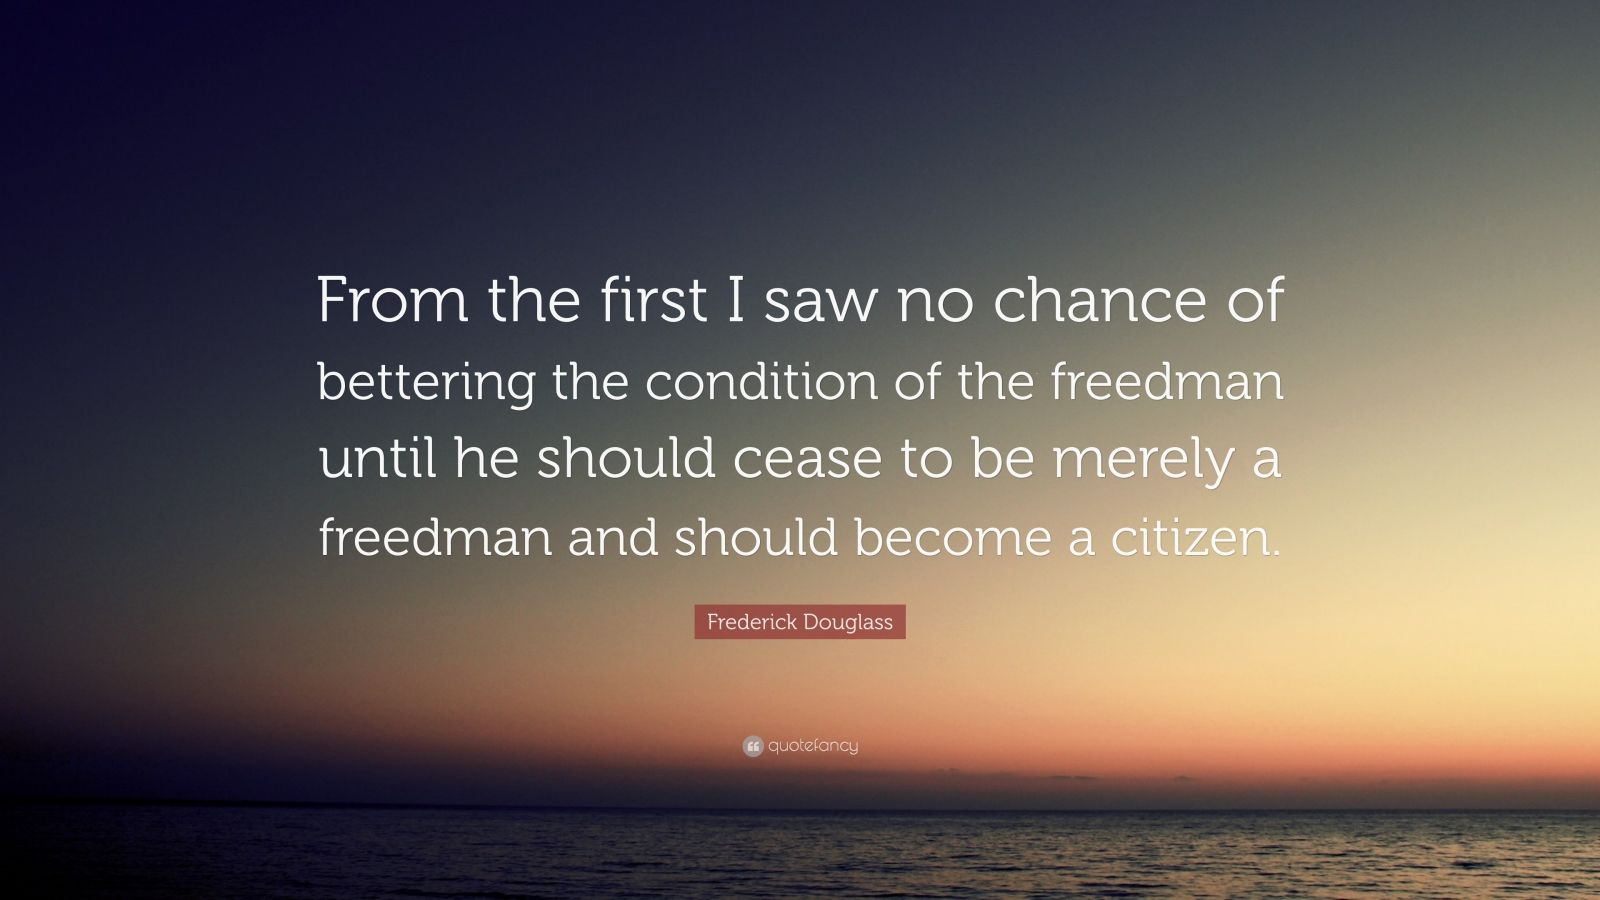 """Frederick Douglass Quote: """"From the first I saw no chance of bettering the condition of the freedman until he should cease to be merely a freedman and should become a citizen."""""""